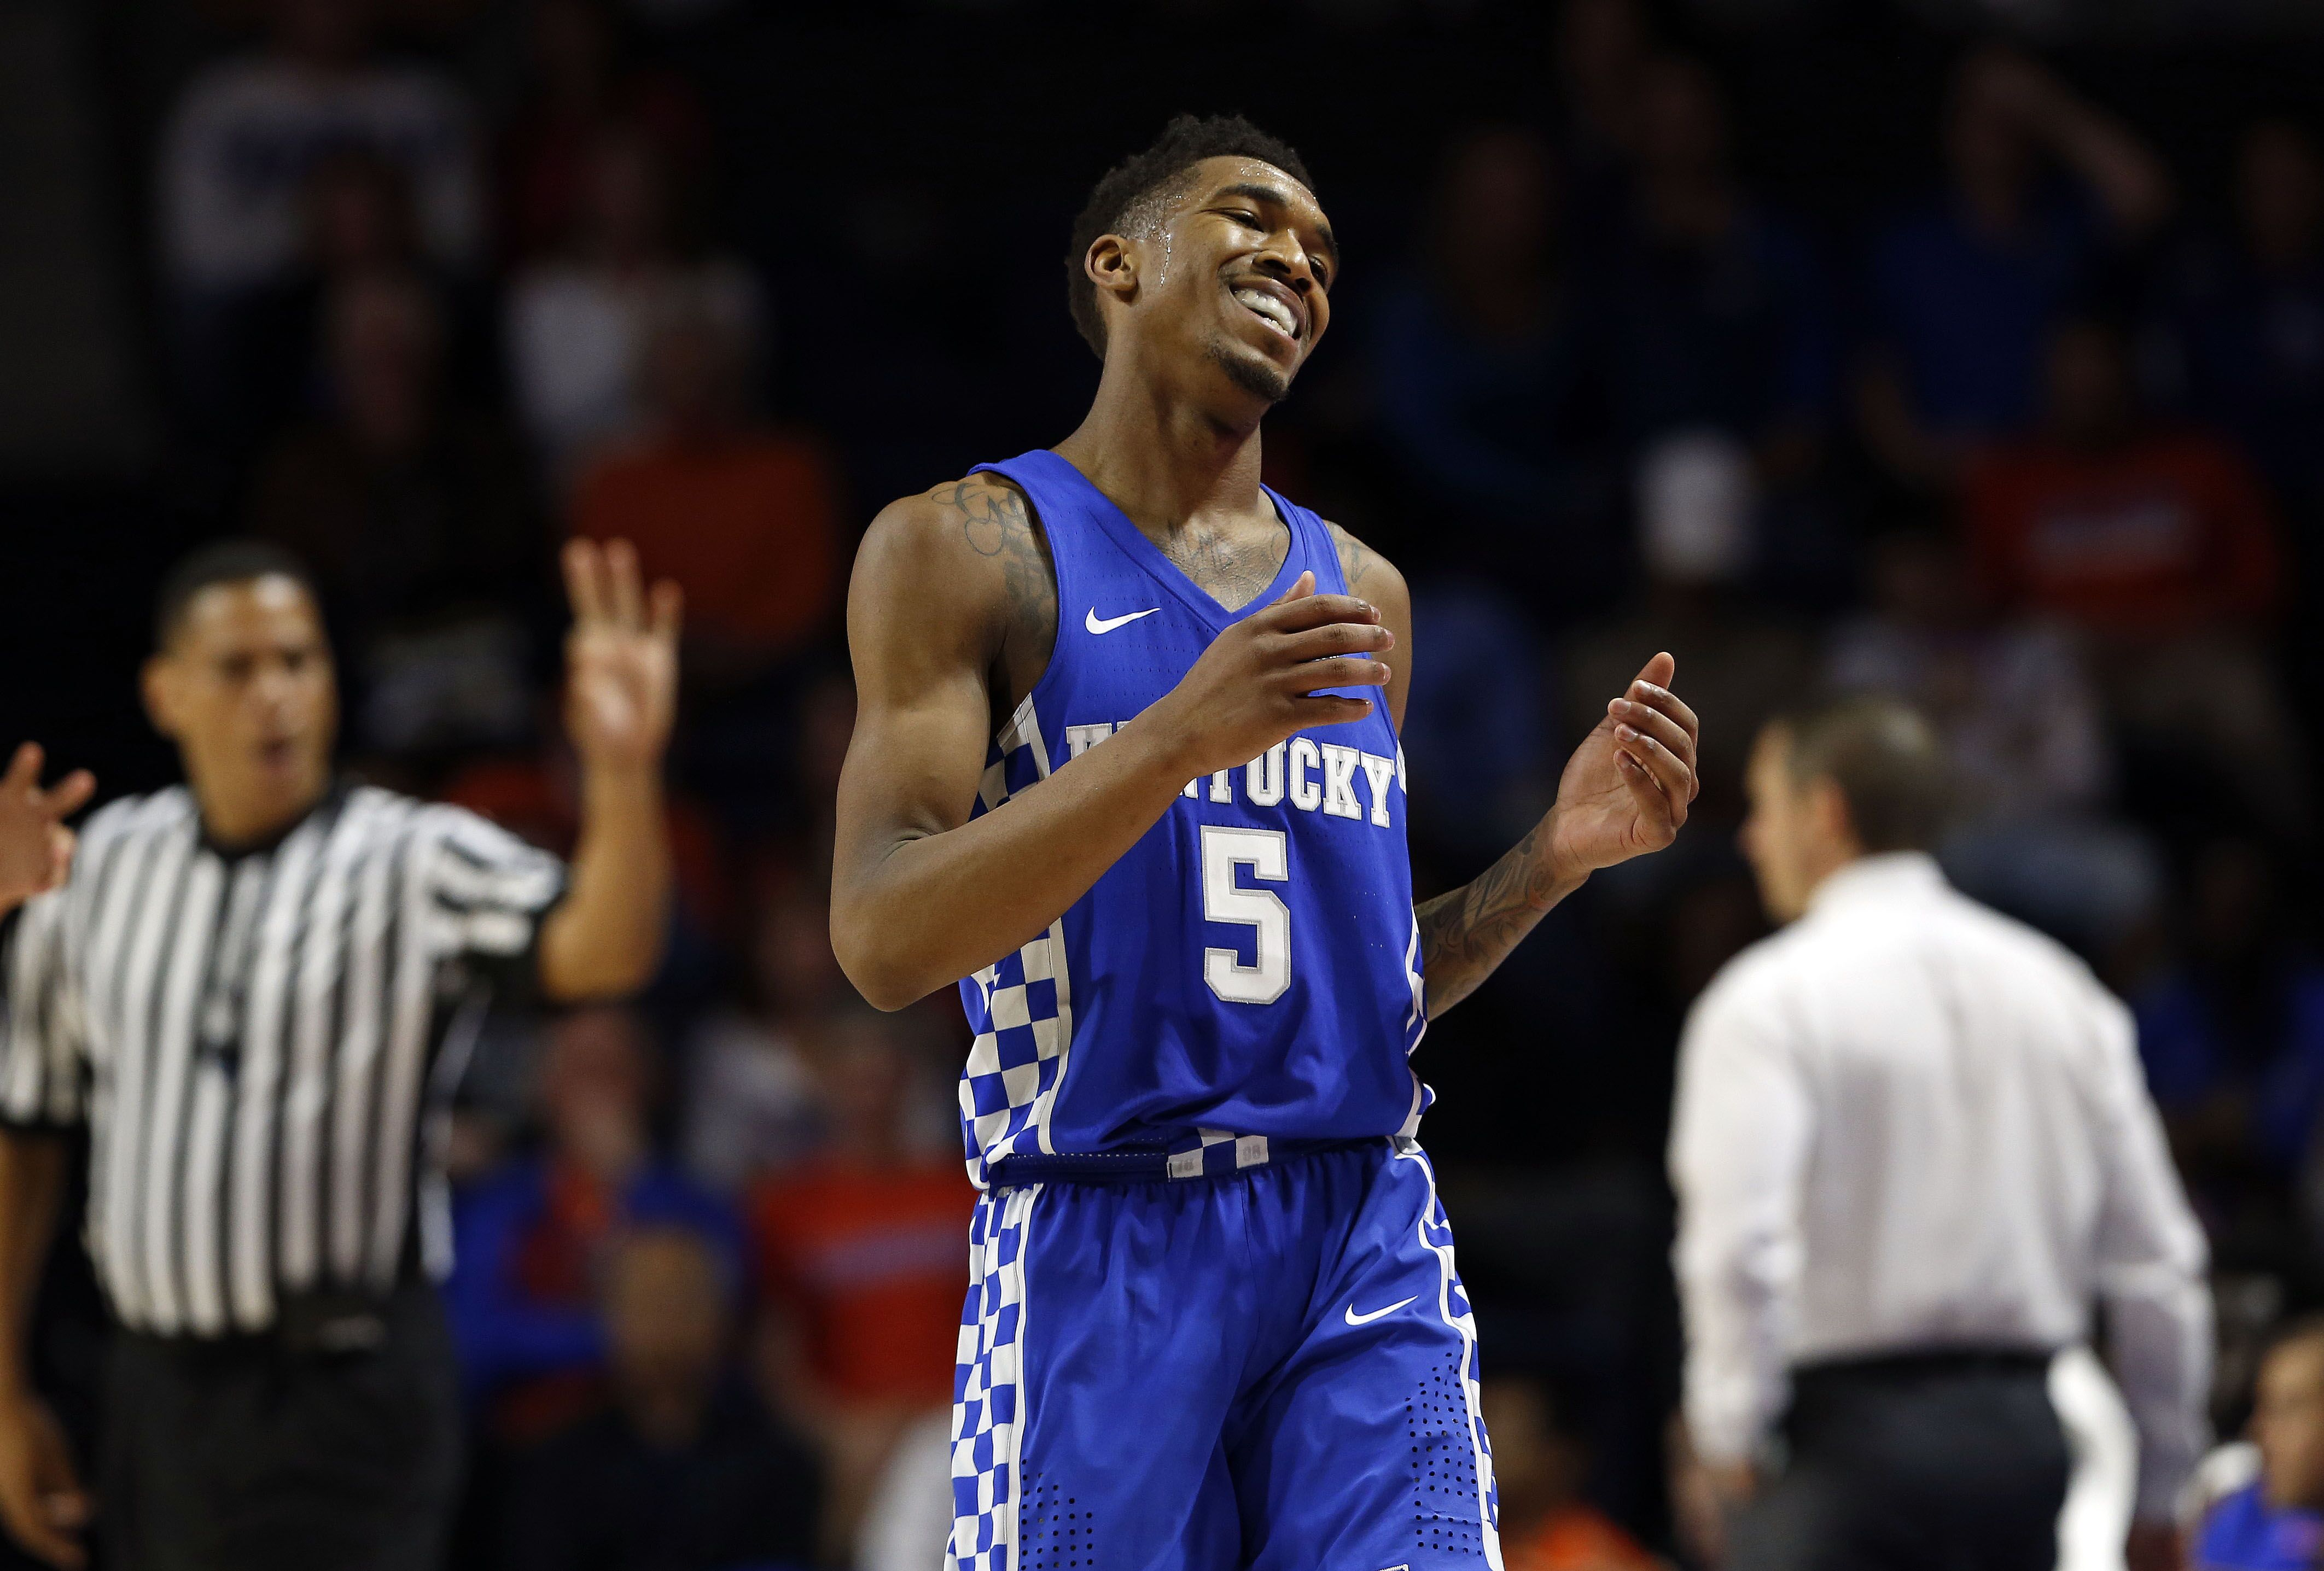 Kentucky Basketball Announces Tv Schedule Game Times And: SEC Basketball: Tennessee Vs. Kentucky Game Preview